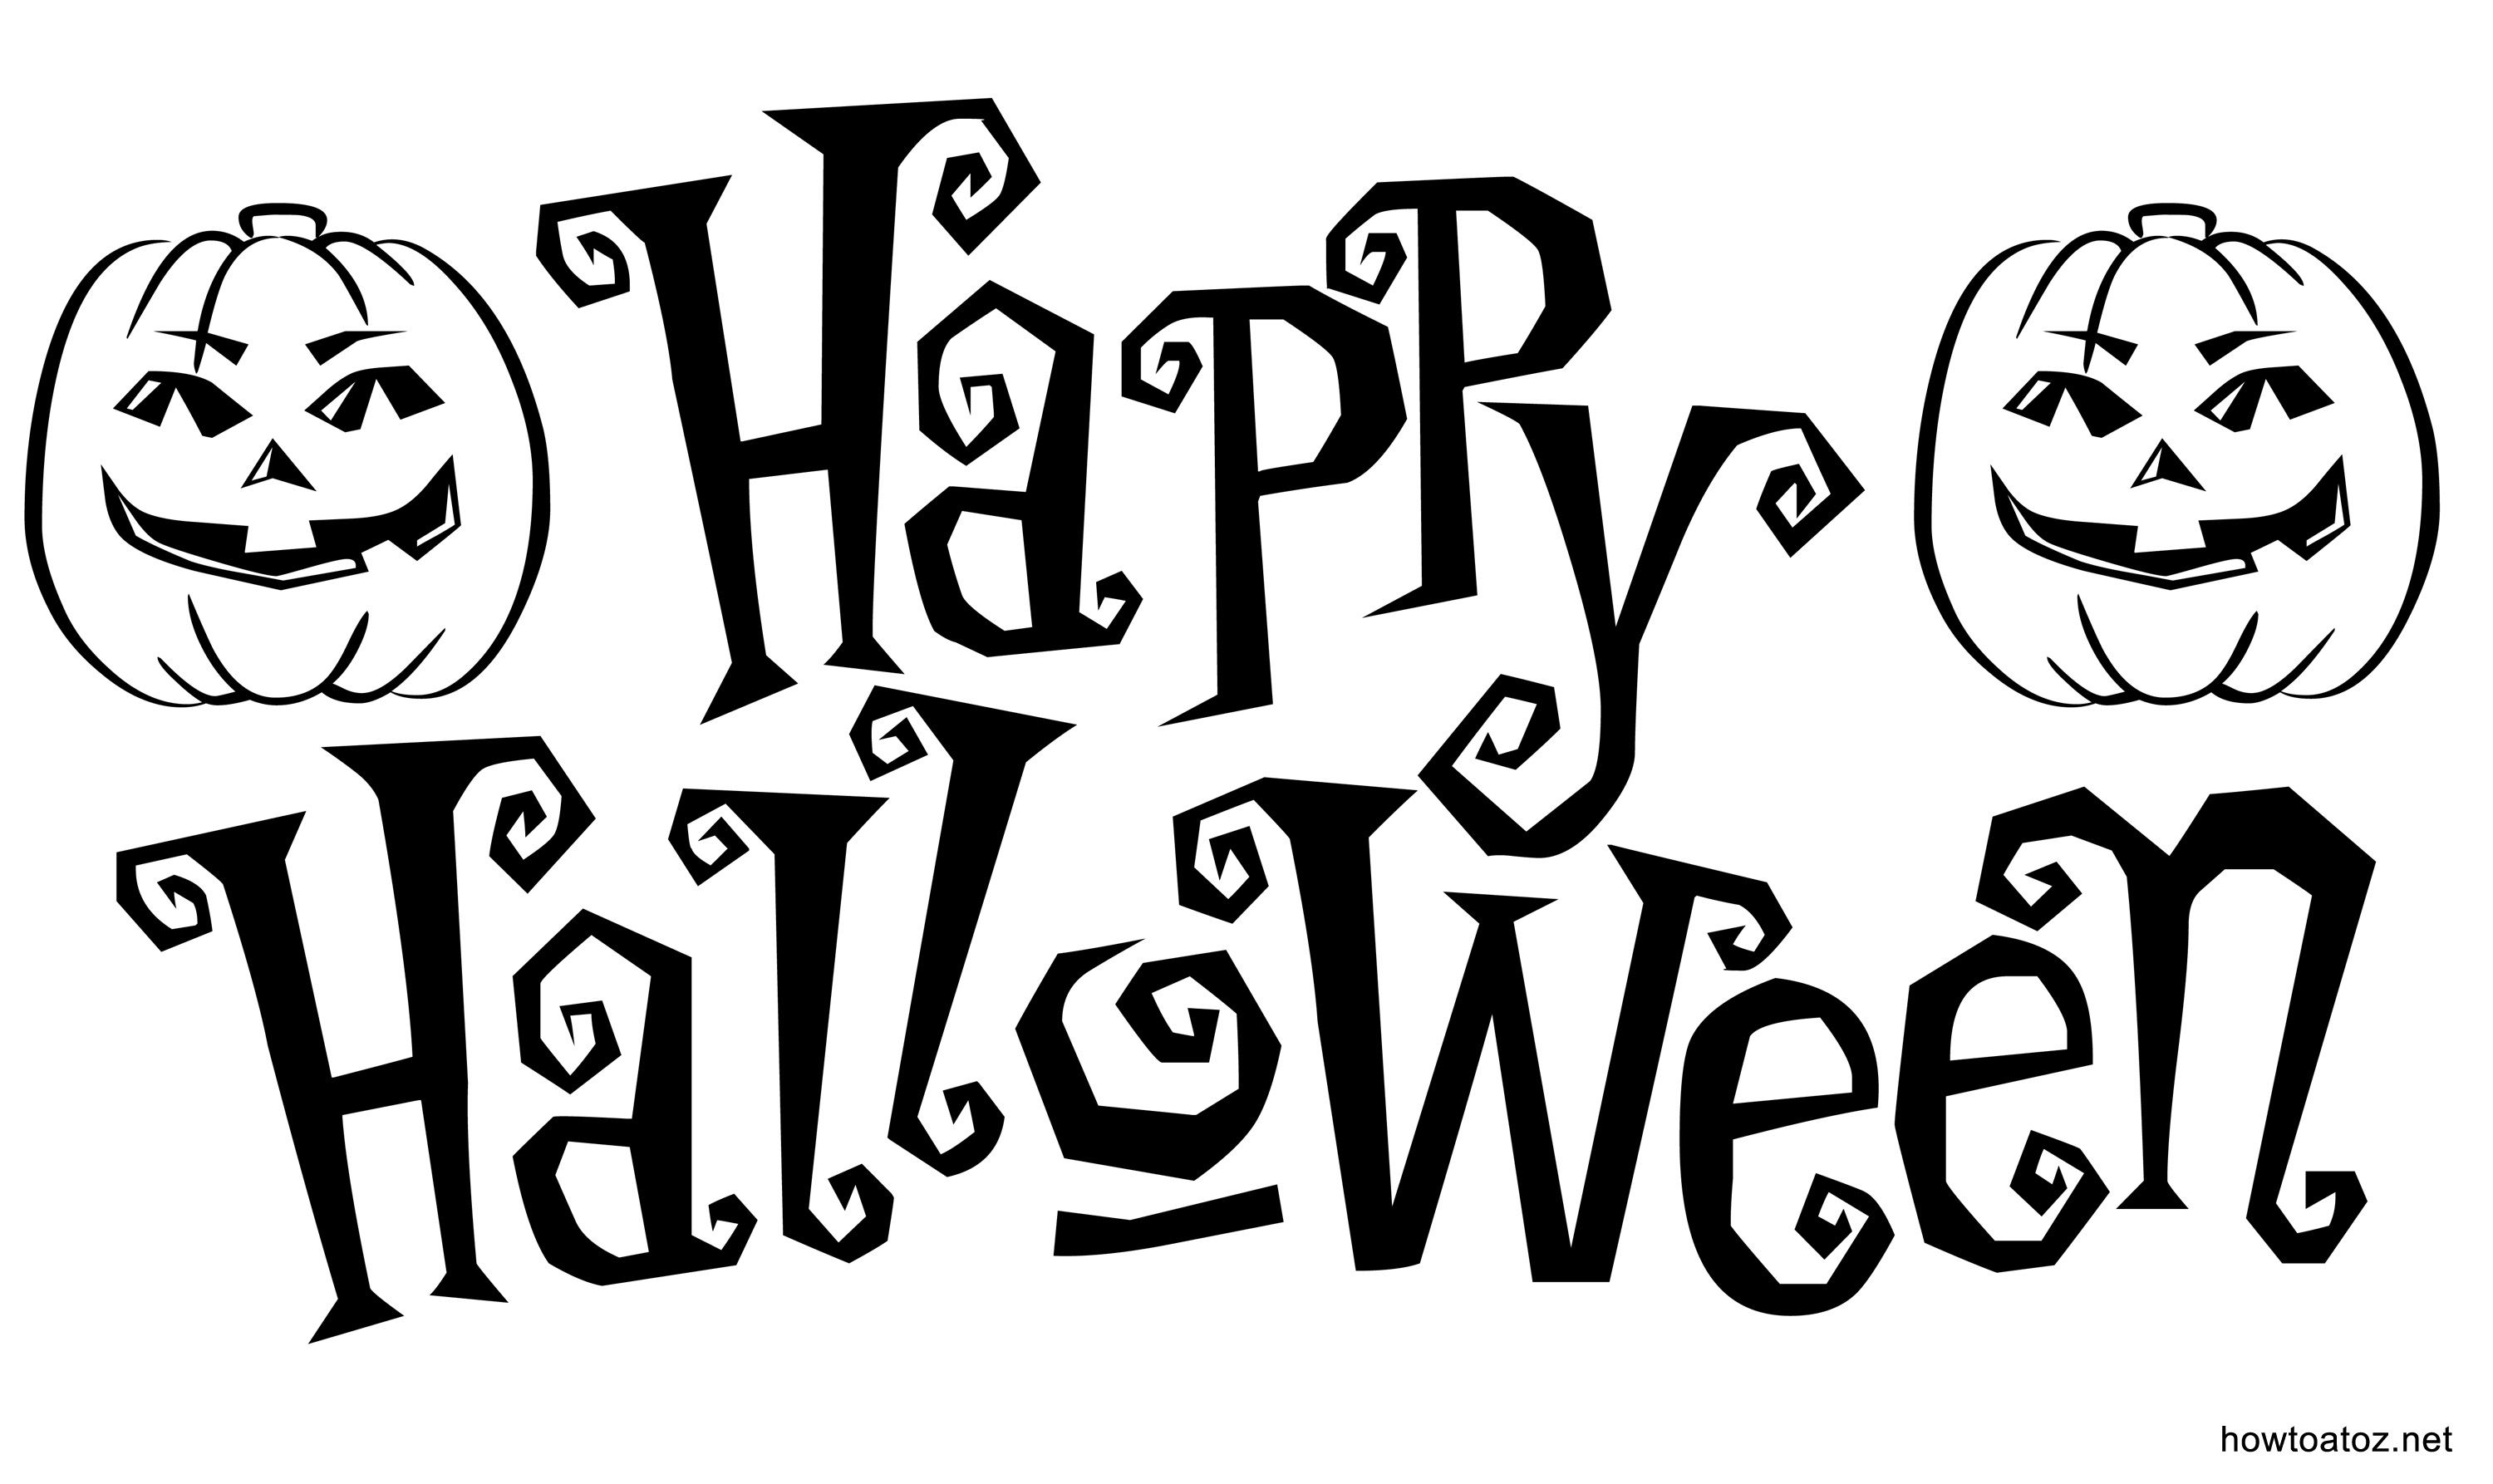 Halloween Decoration Stencils And Templates - How to A to Z